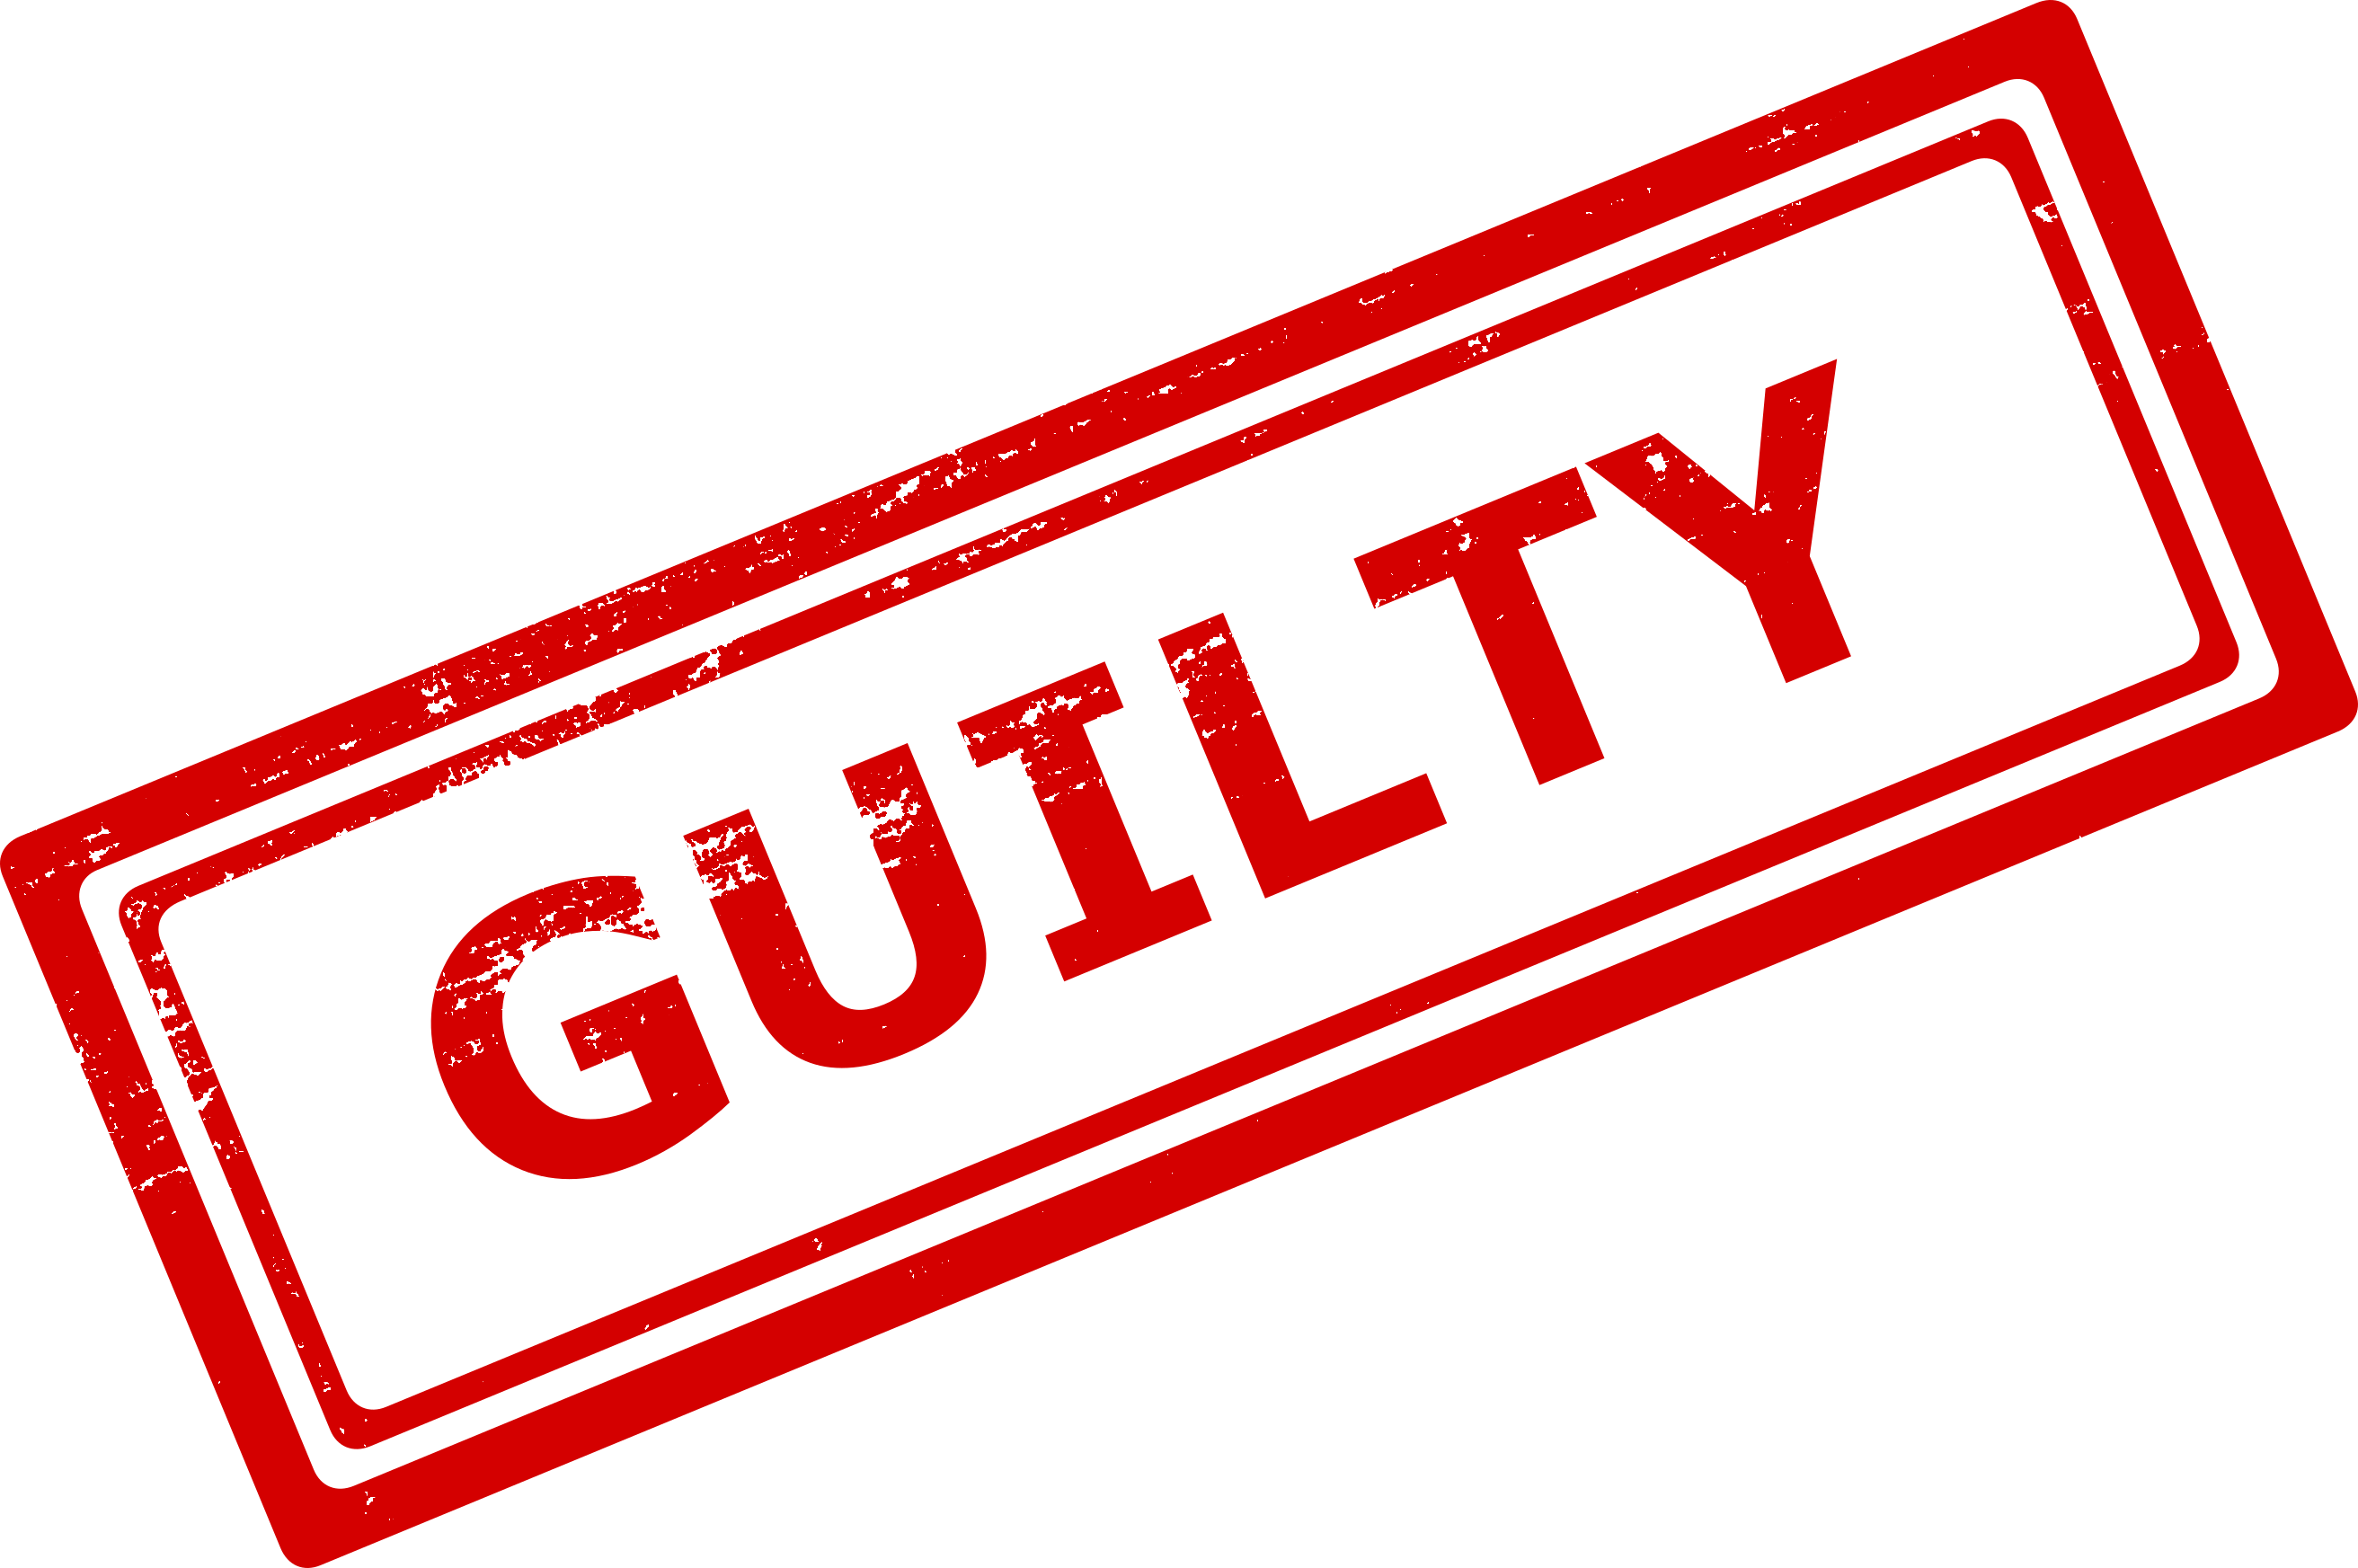 guilty stamp png transparent onlygfxm #28722